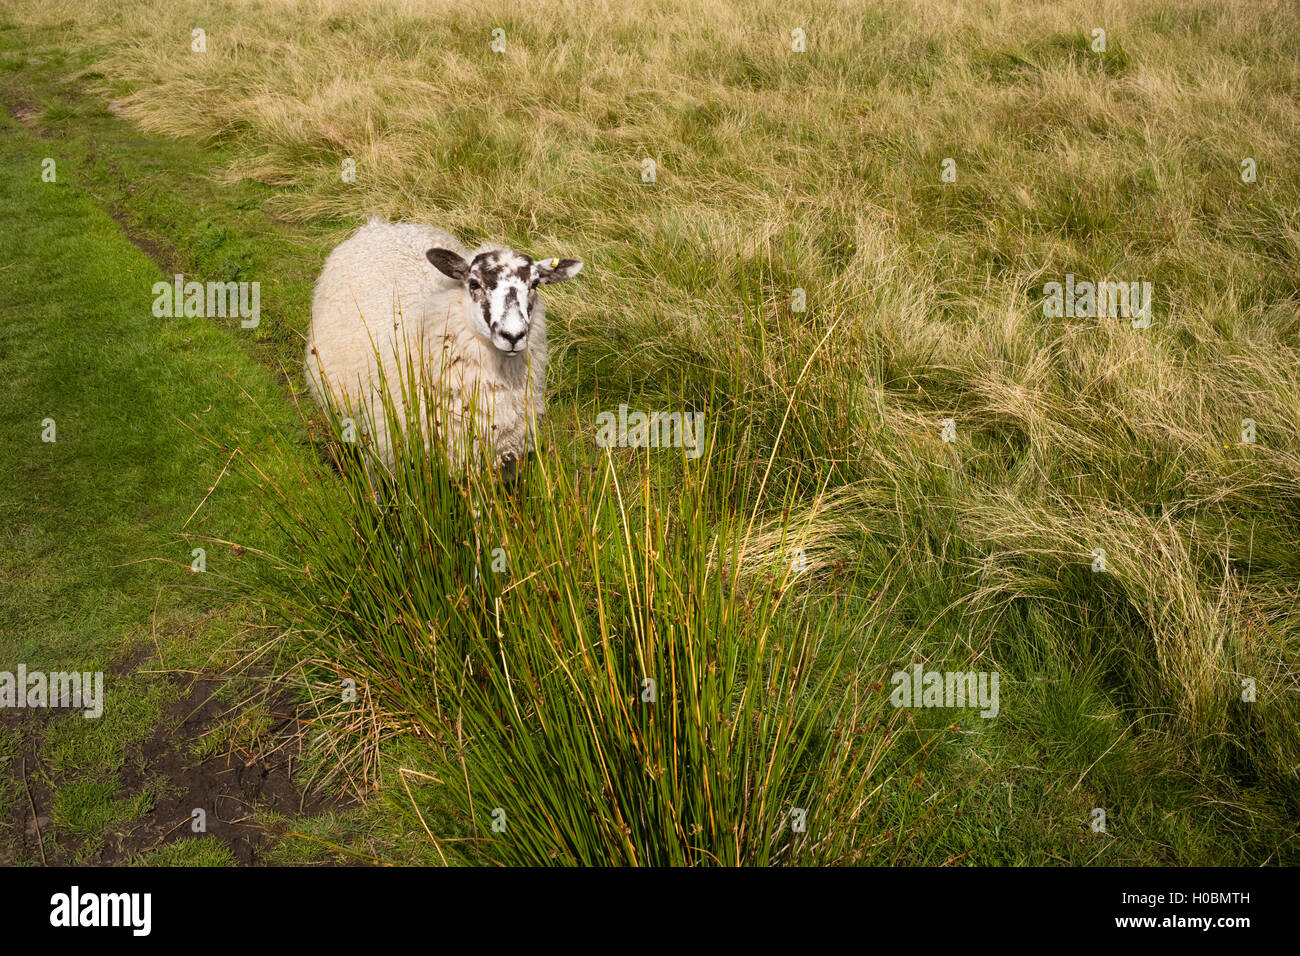 A bold and distinctive Masham sheep  on the Pennine Way, Upper Teesdale, Durham, England, UK - Stock Image